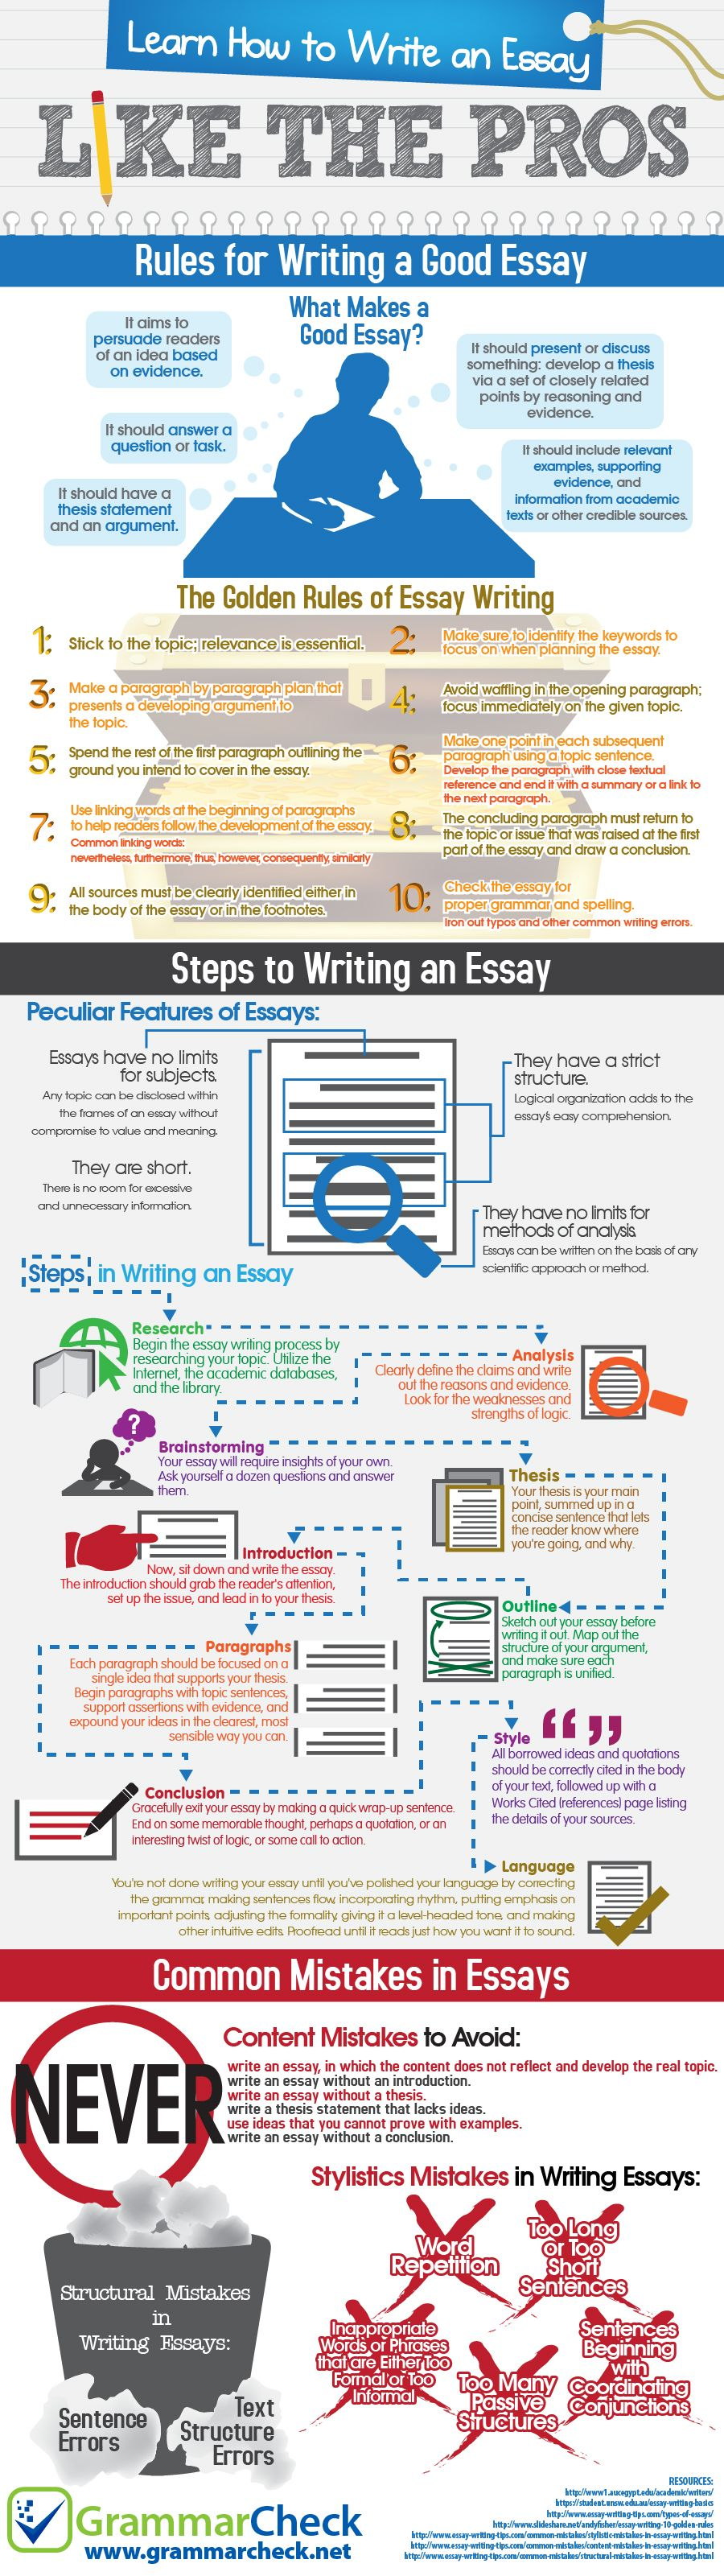 how to write an essay like the pros infographic about writing essay tips